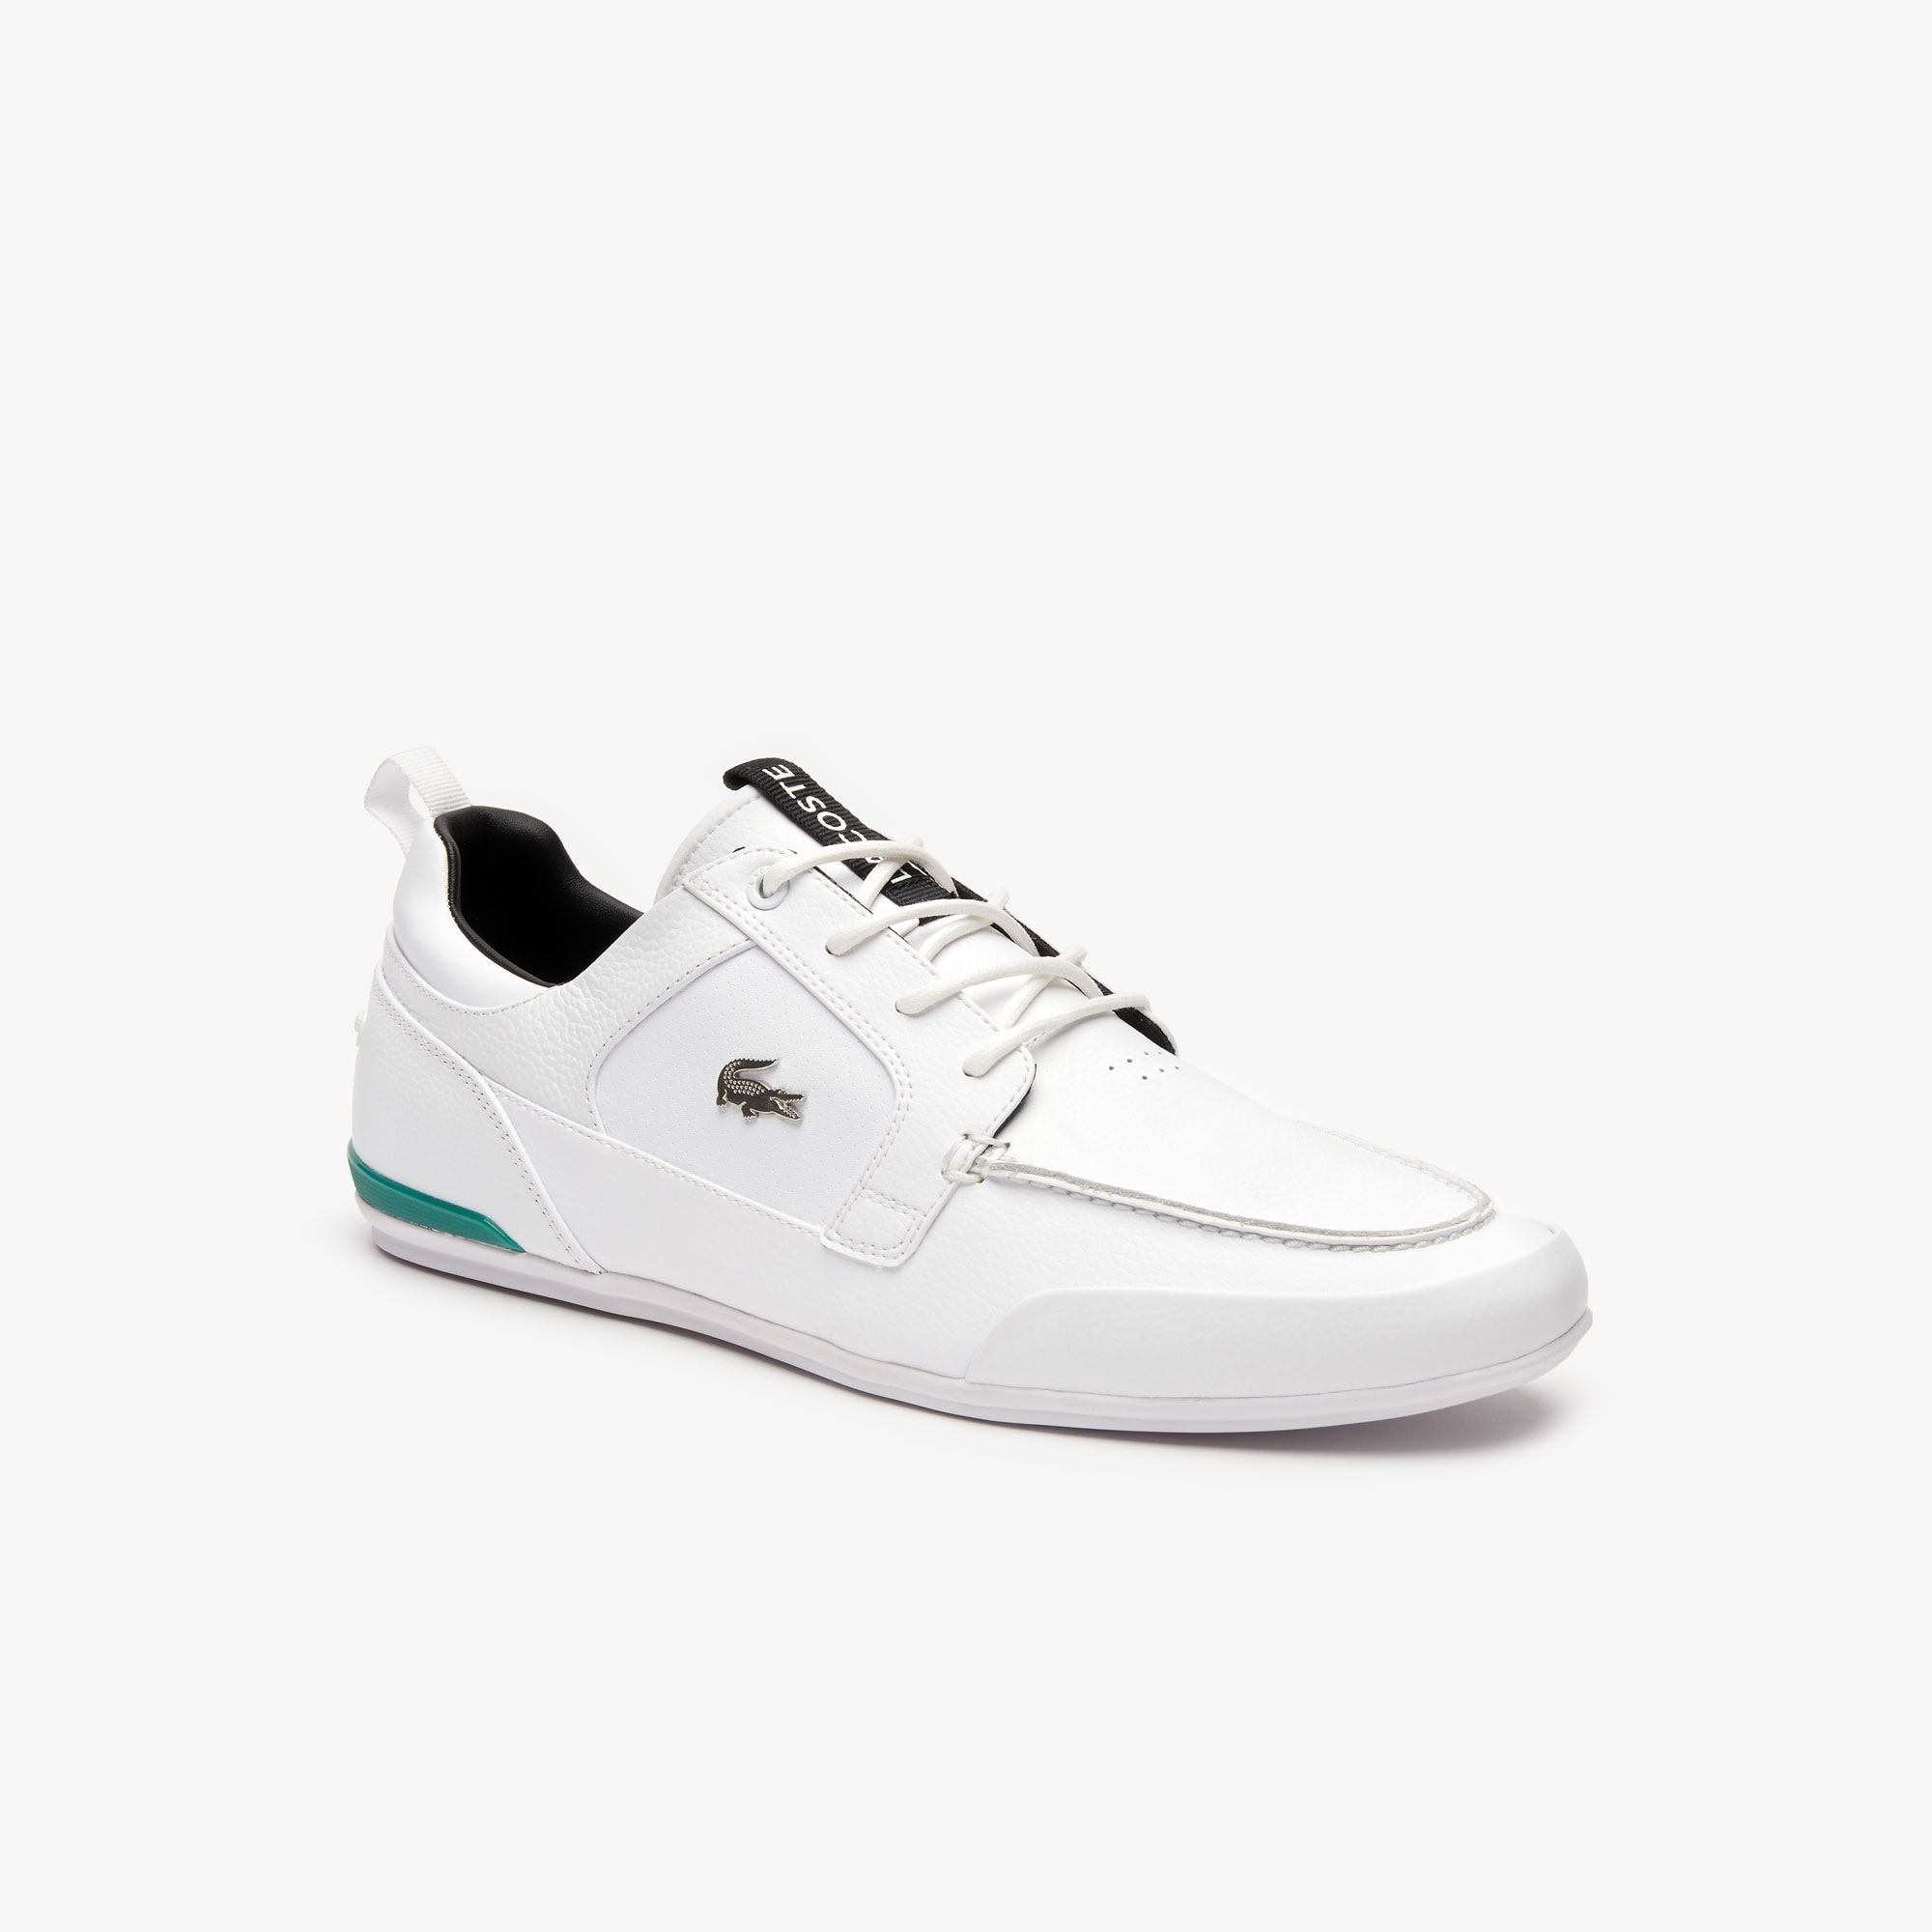 Lacoste  Men's Marina Leather Boat Shoes